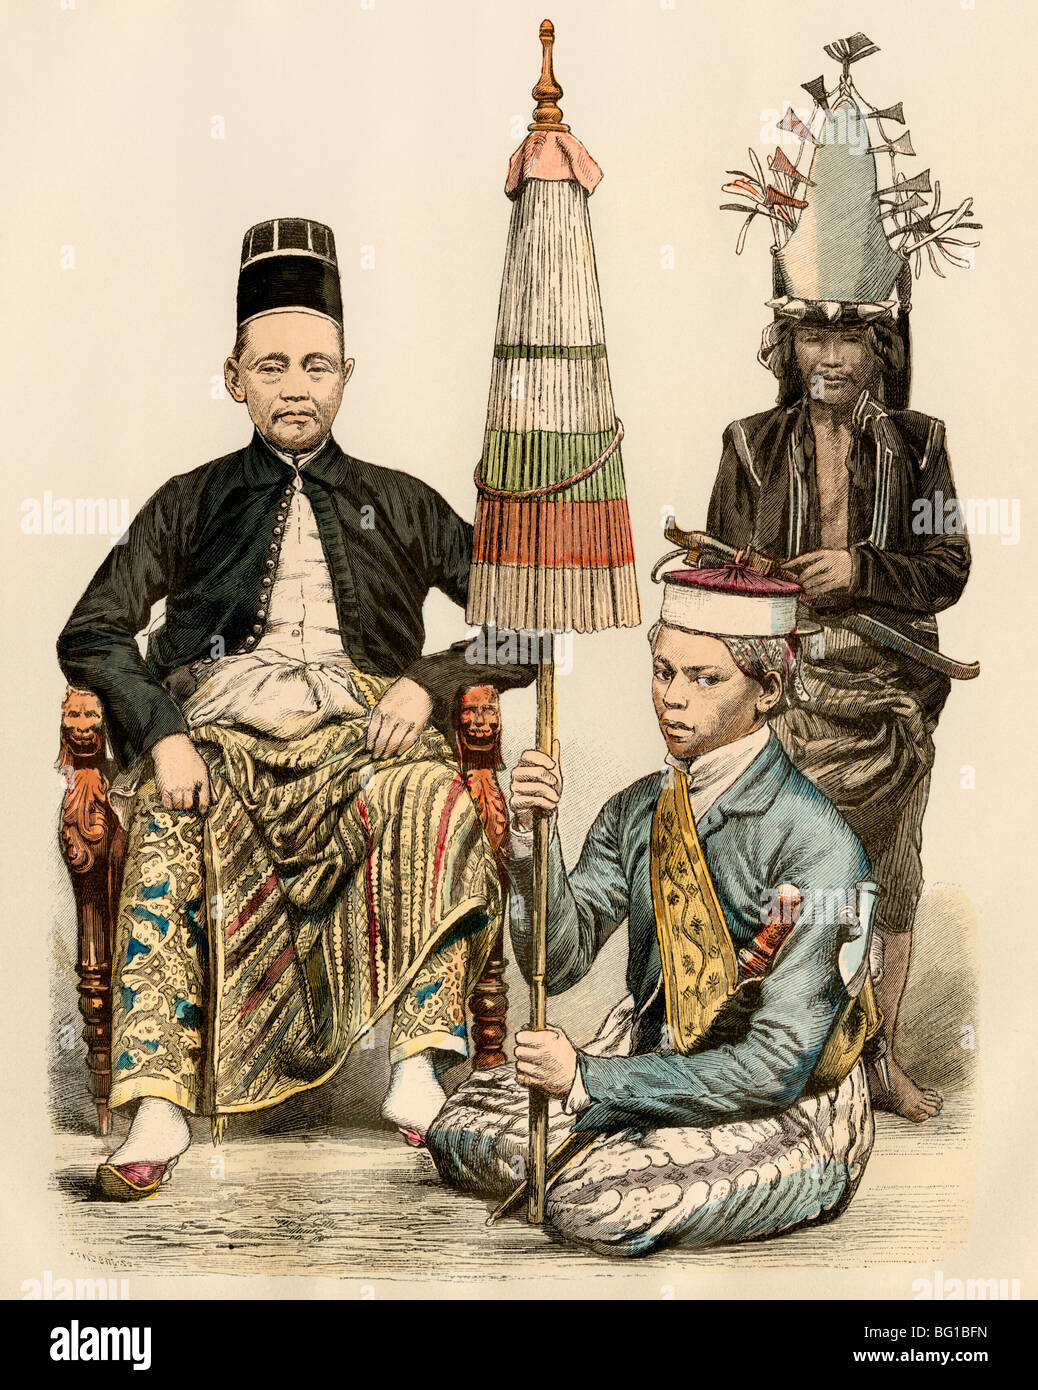 Regent of Java, his bodyguard, and an attendant, 1800s. Hand-colored print - Stock Image